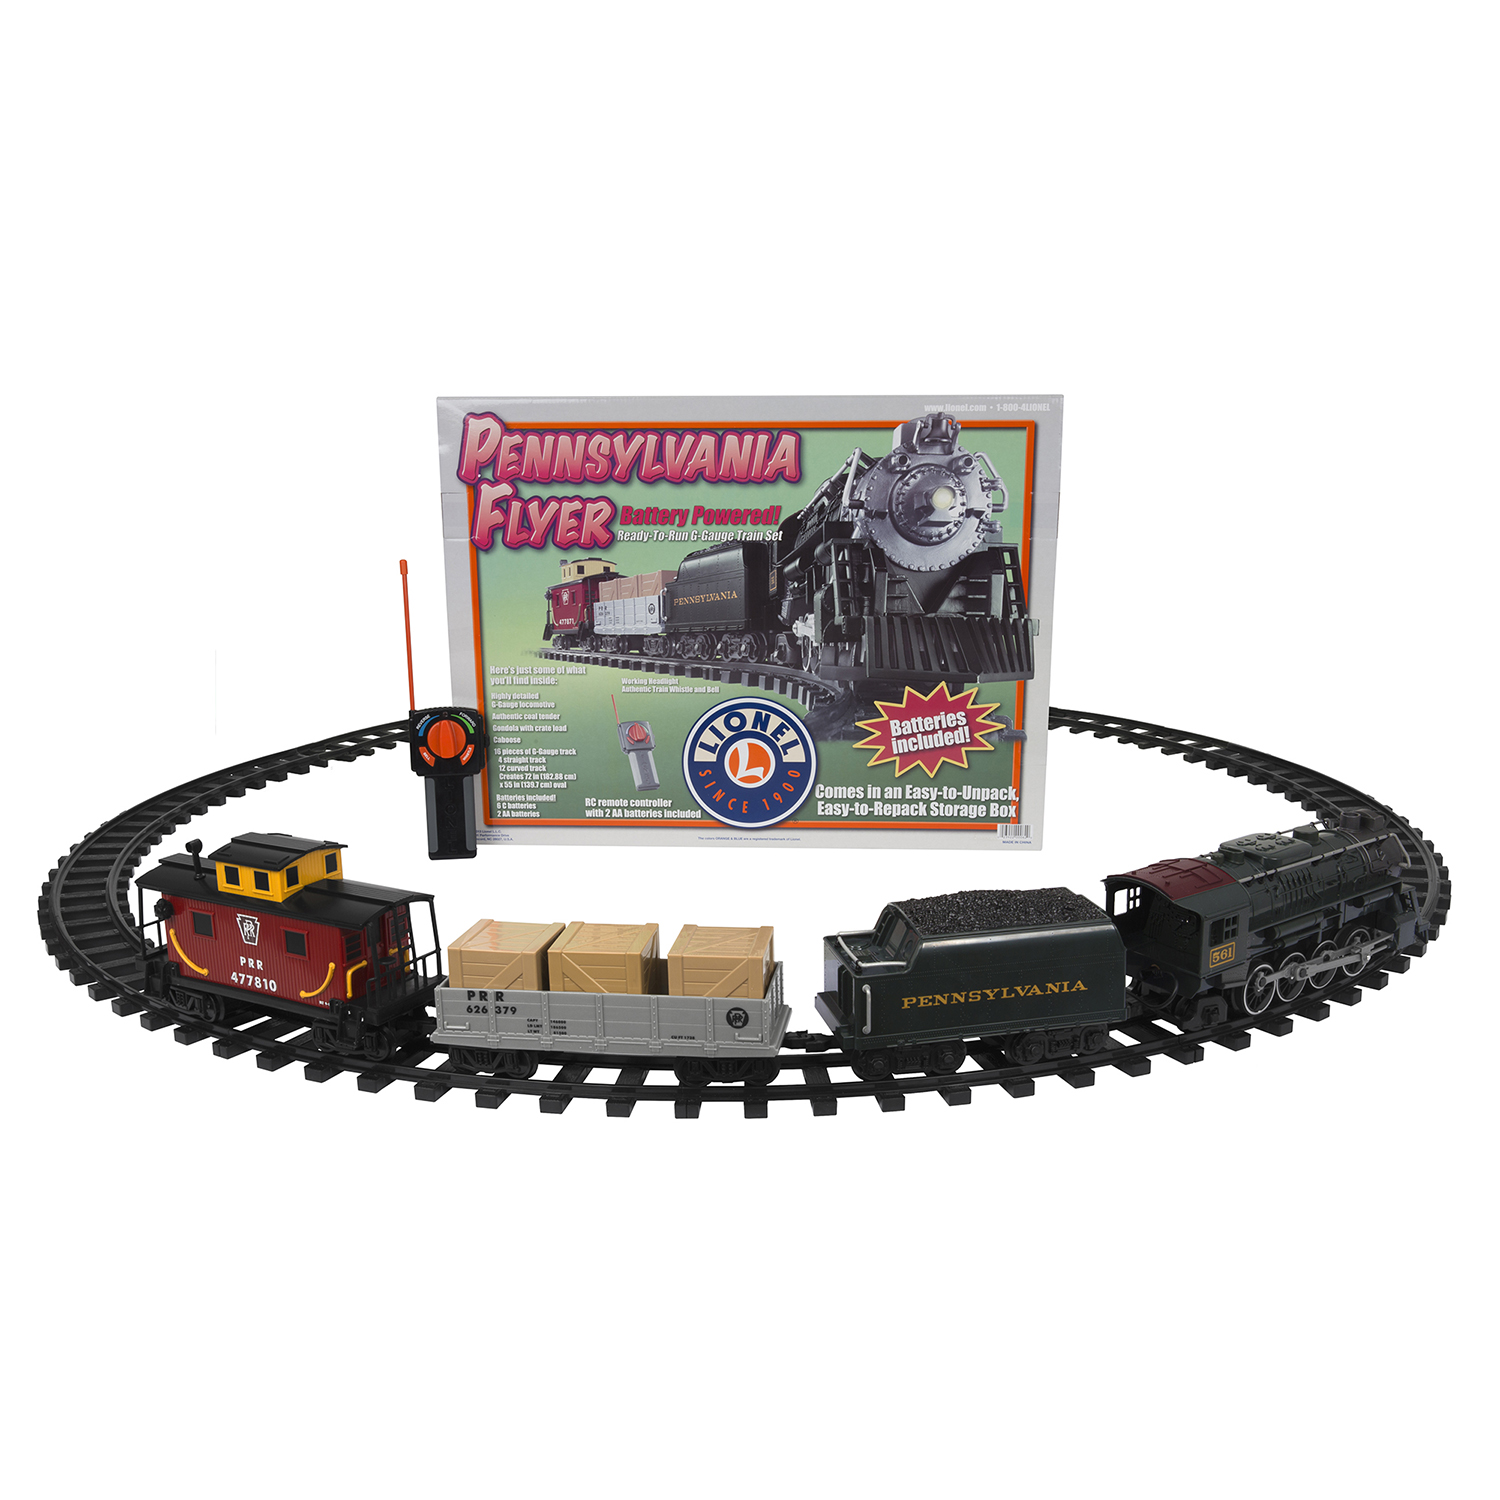 Lionel Trains Pennsylvania Flyer Seasonal Freight Ready to Play Set